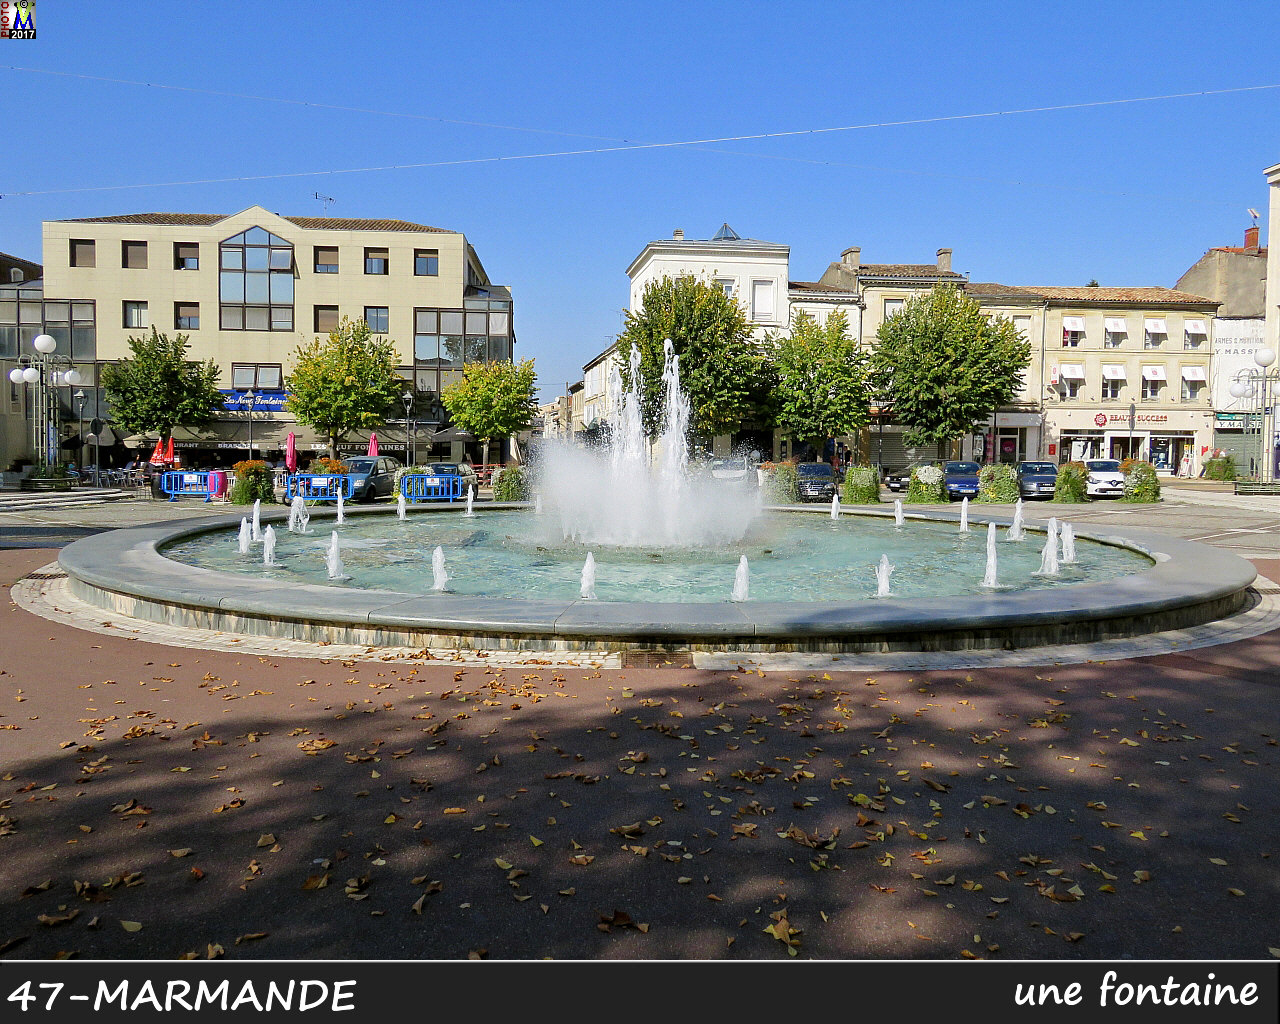 47MARMANDE_fontaine_1000.jpg